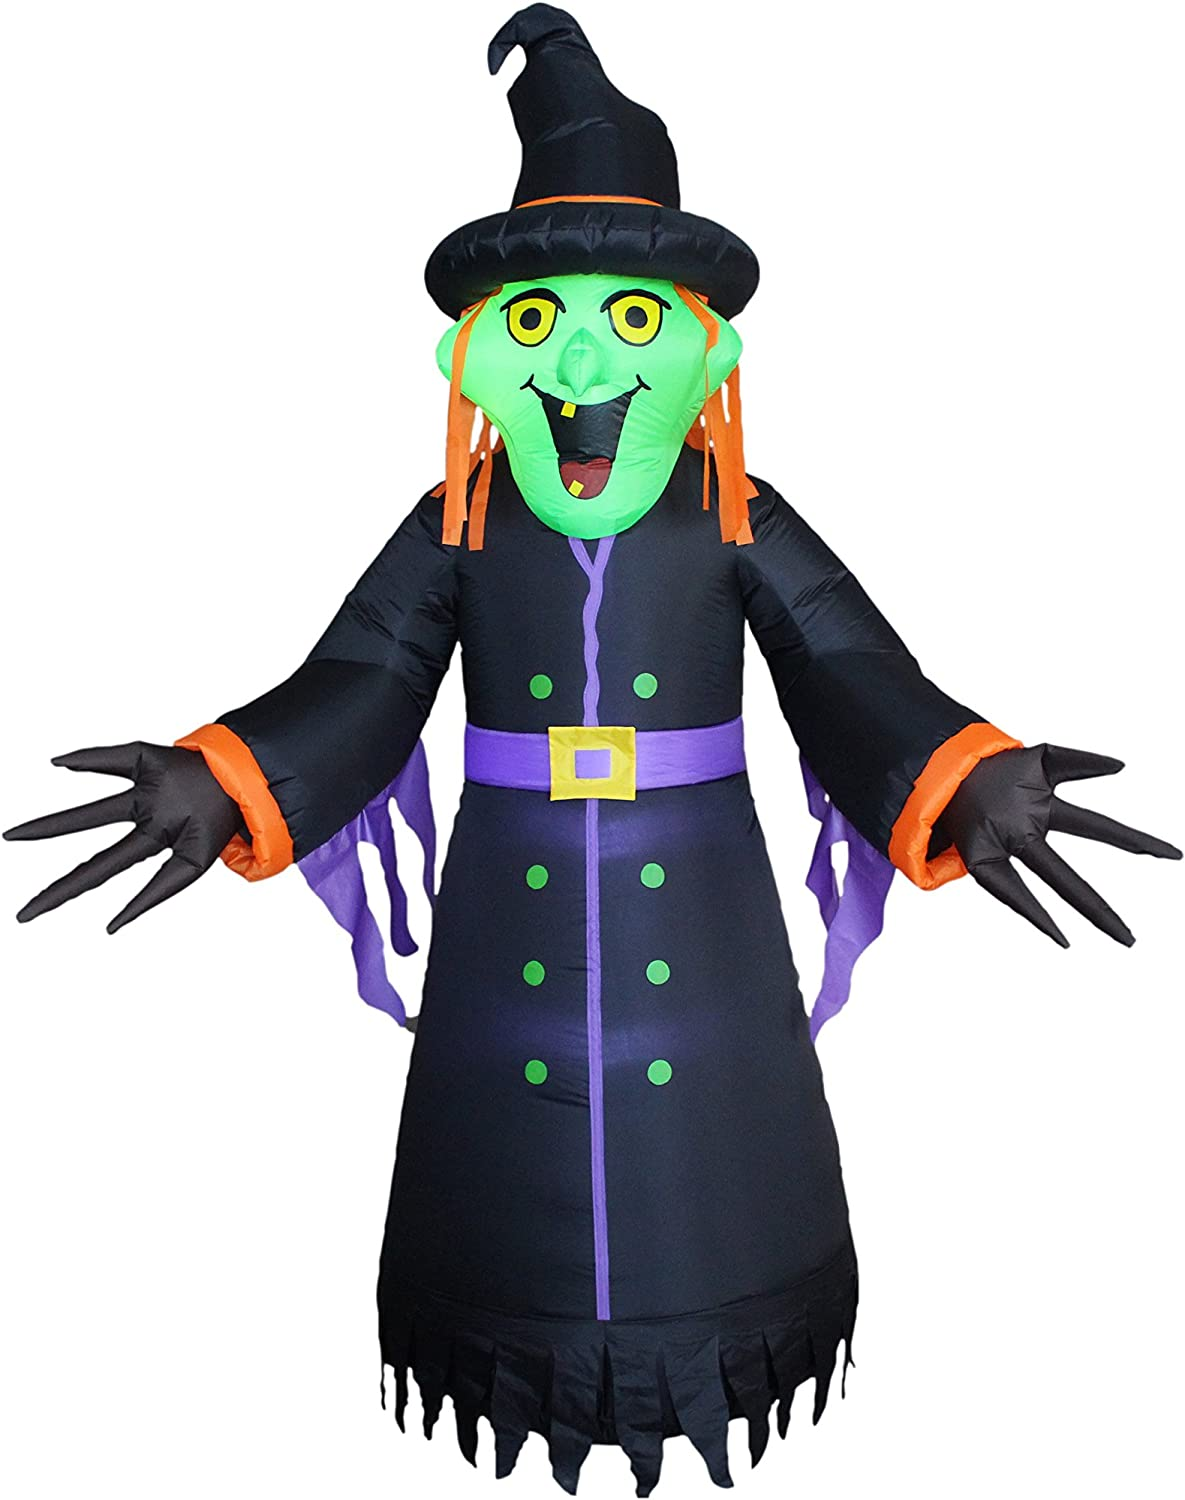 BZB Goods 8 Foot Tall Halloween Inflatable Witch LED Lights Decor Outdoor Indoor Holiday Decorations, Blow up Lighted Yard Decor, Giant Lawn Inflatables Home Family Outside